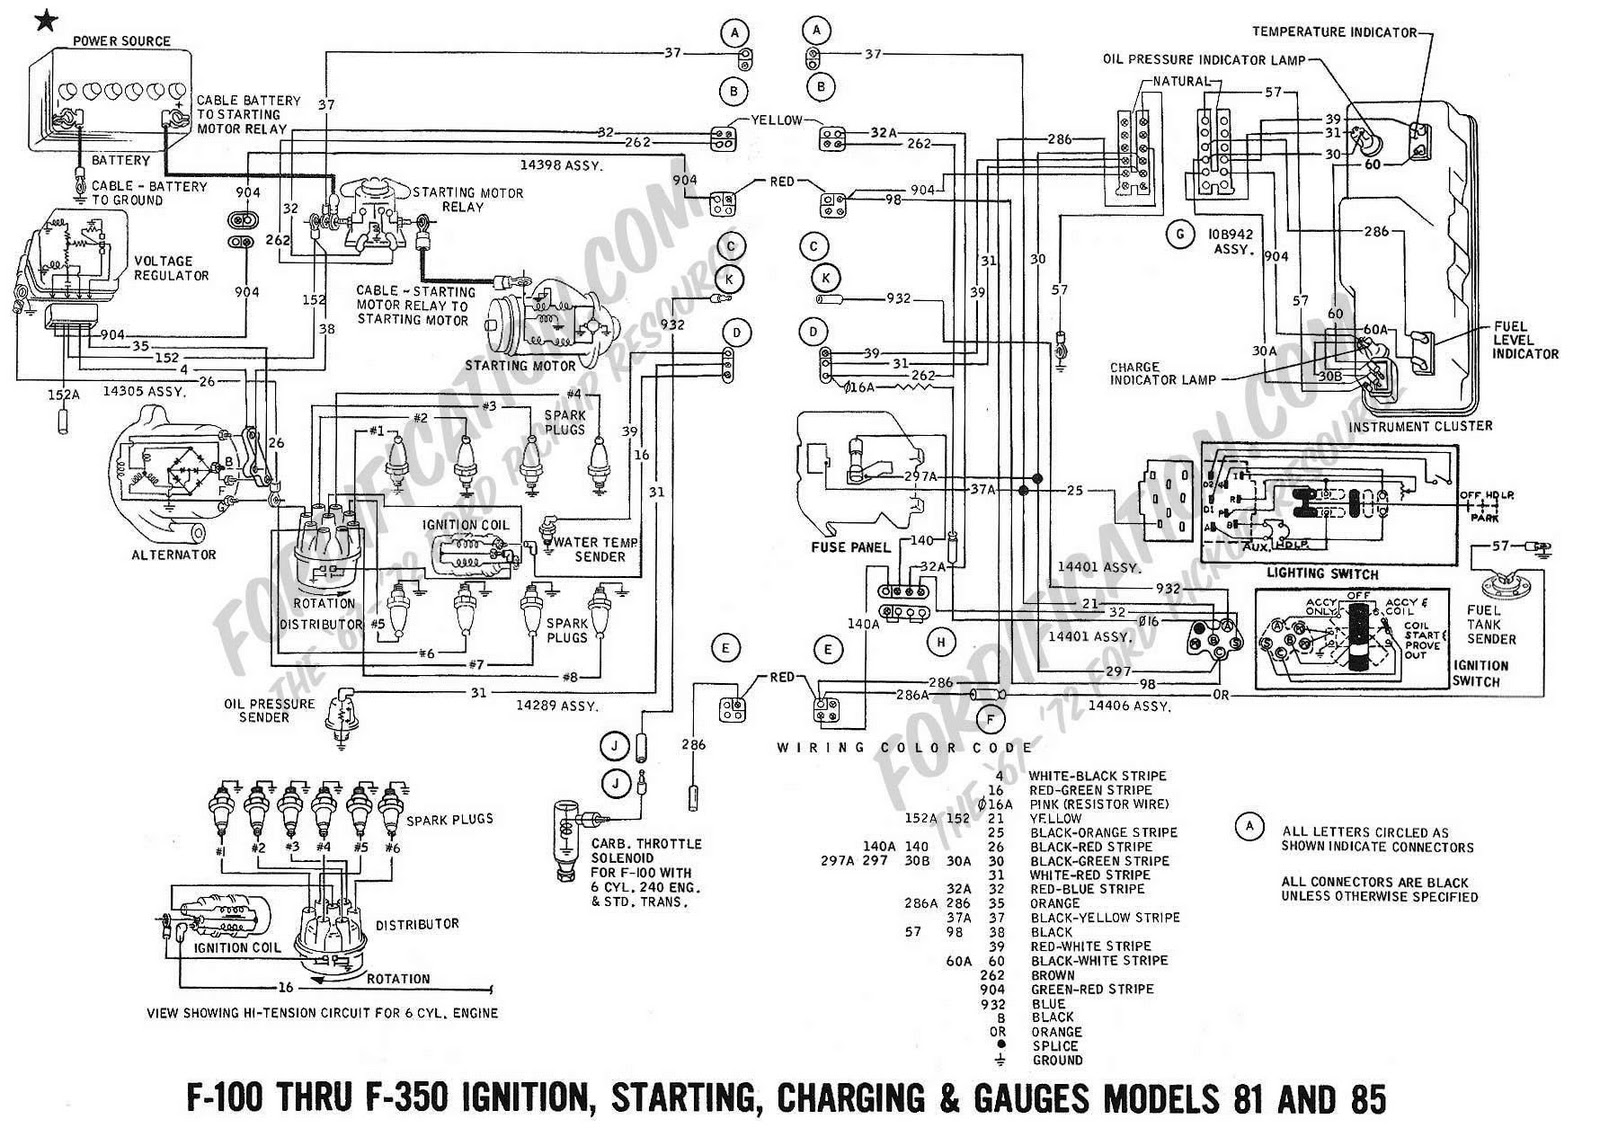 transfer switch wiring diagram dolphin shark gauges 1969 f100 topdns organisedmum de 1967 ford f250 jajvmb danielaharde u2022 rh turn signal alternator